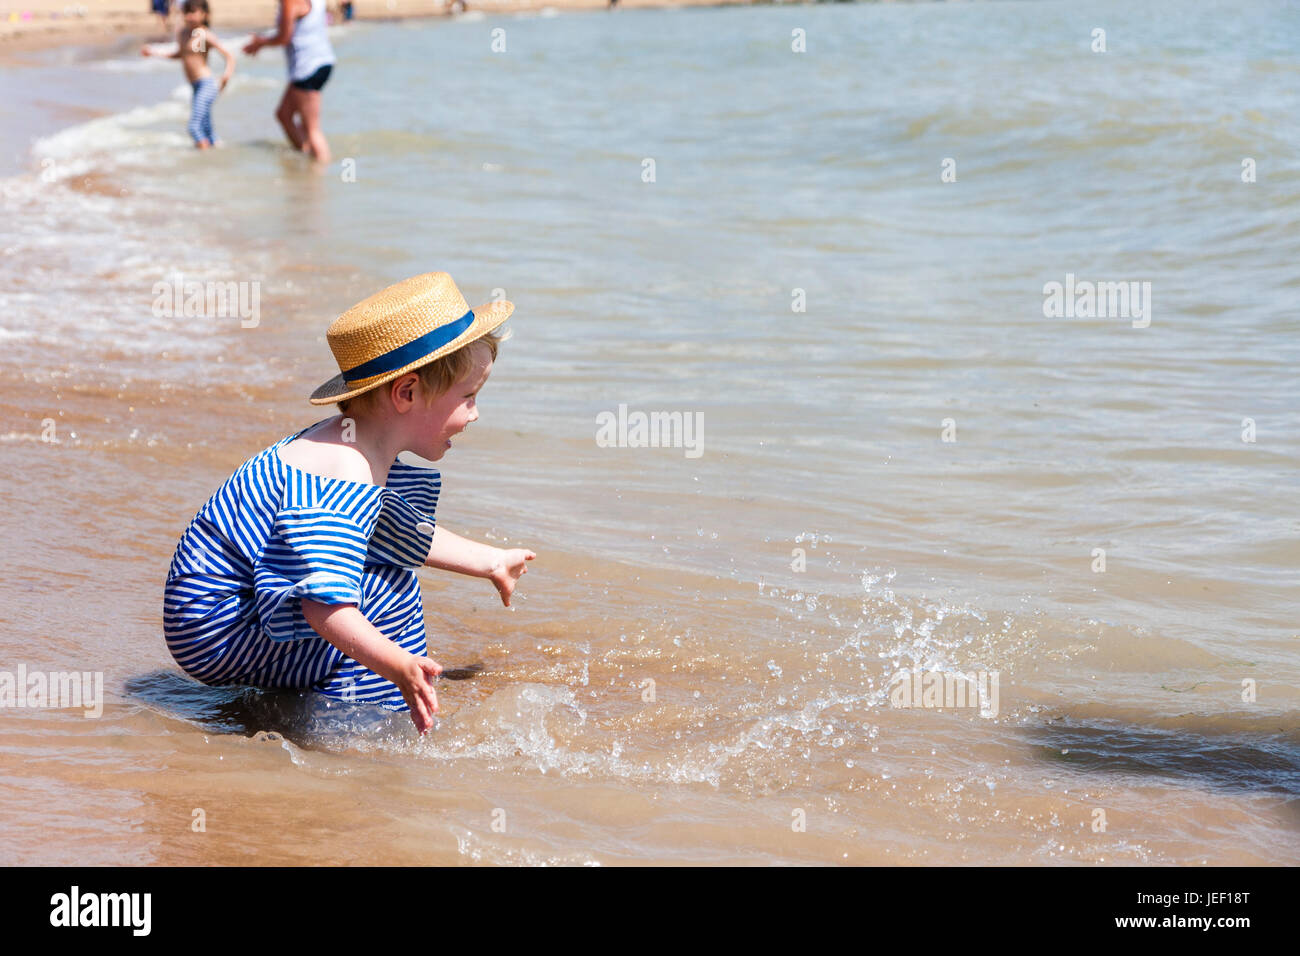 Caucasian blonde child, boy, 4-5 years old, kneeling in the surf on a beach, wearing straw hat and blue and white - Stock Image